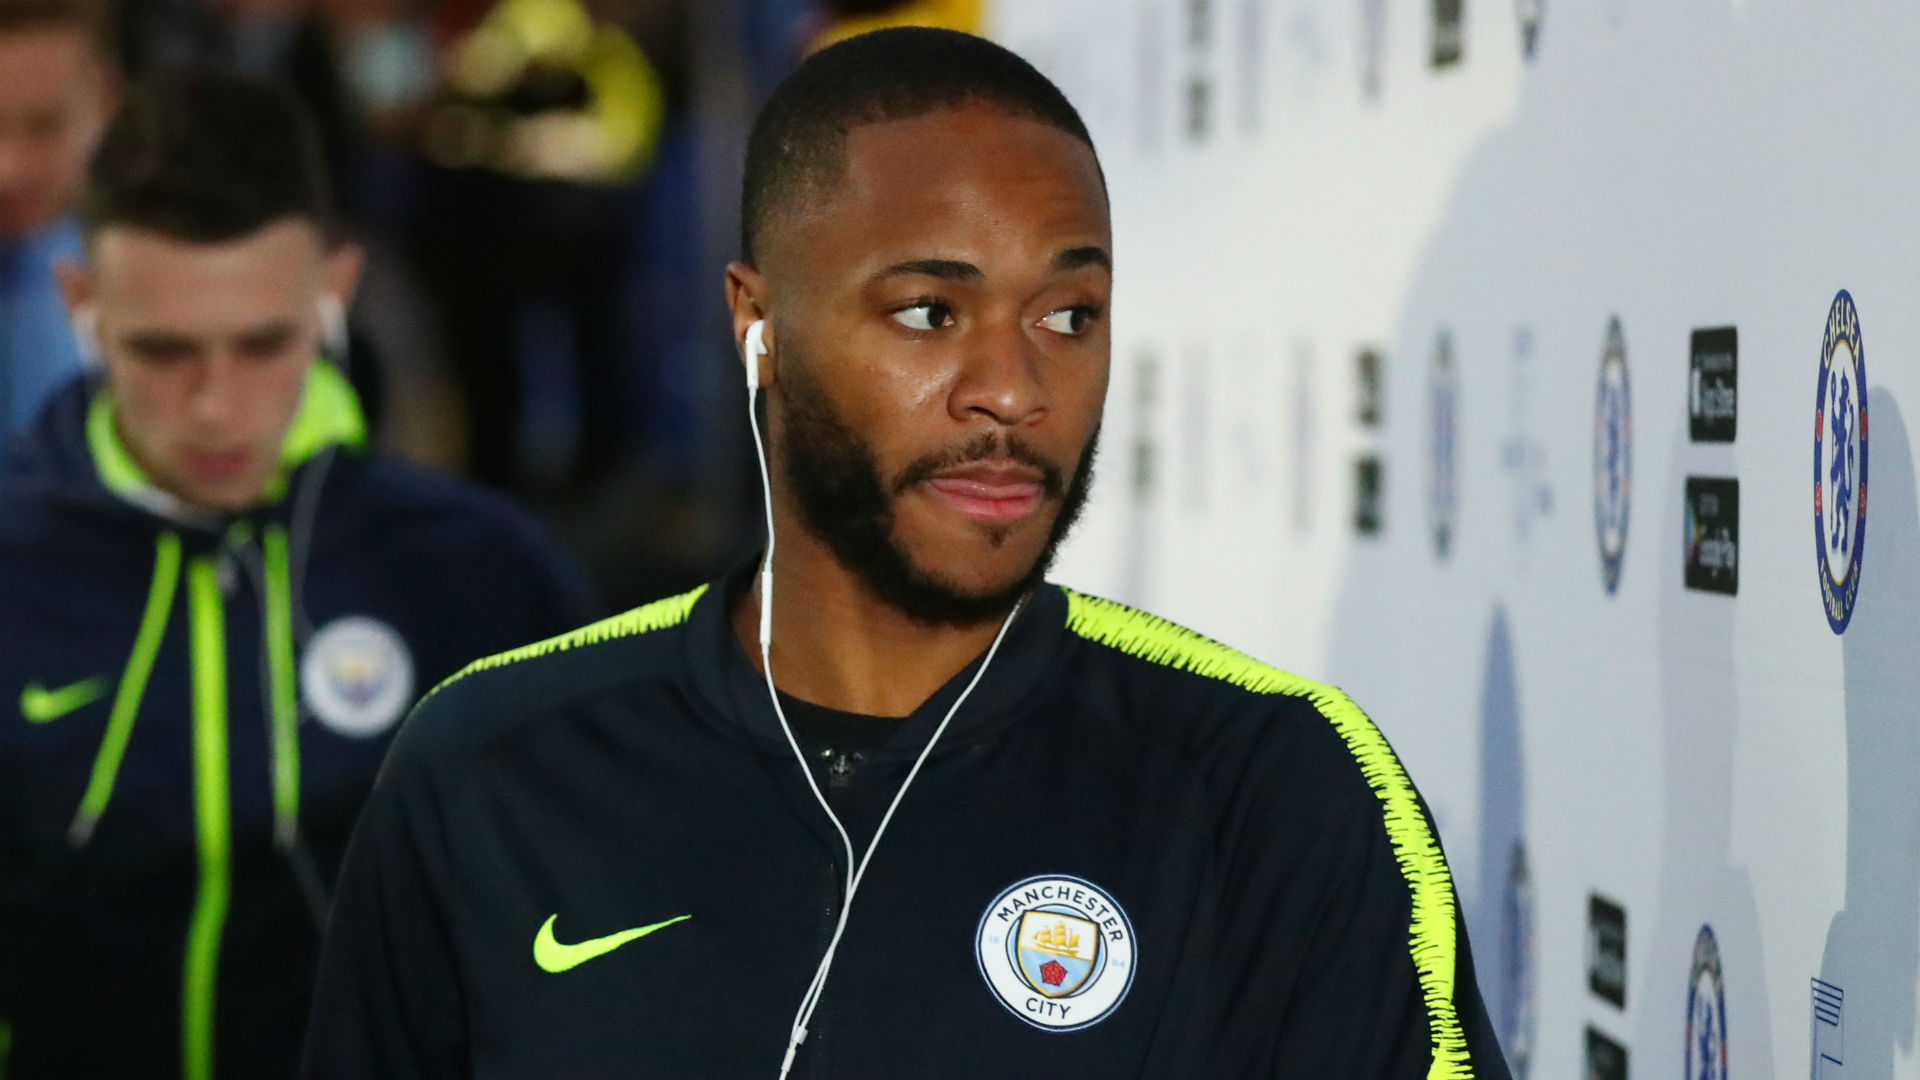 Chelsea and police look into alleged racist abuse of Sterling